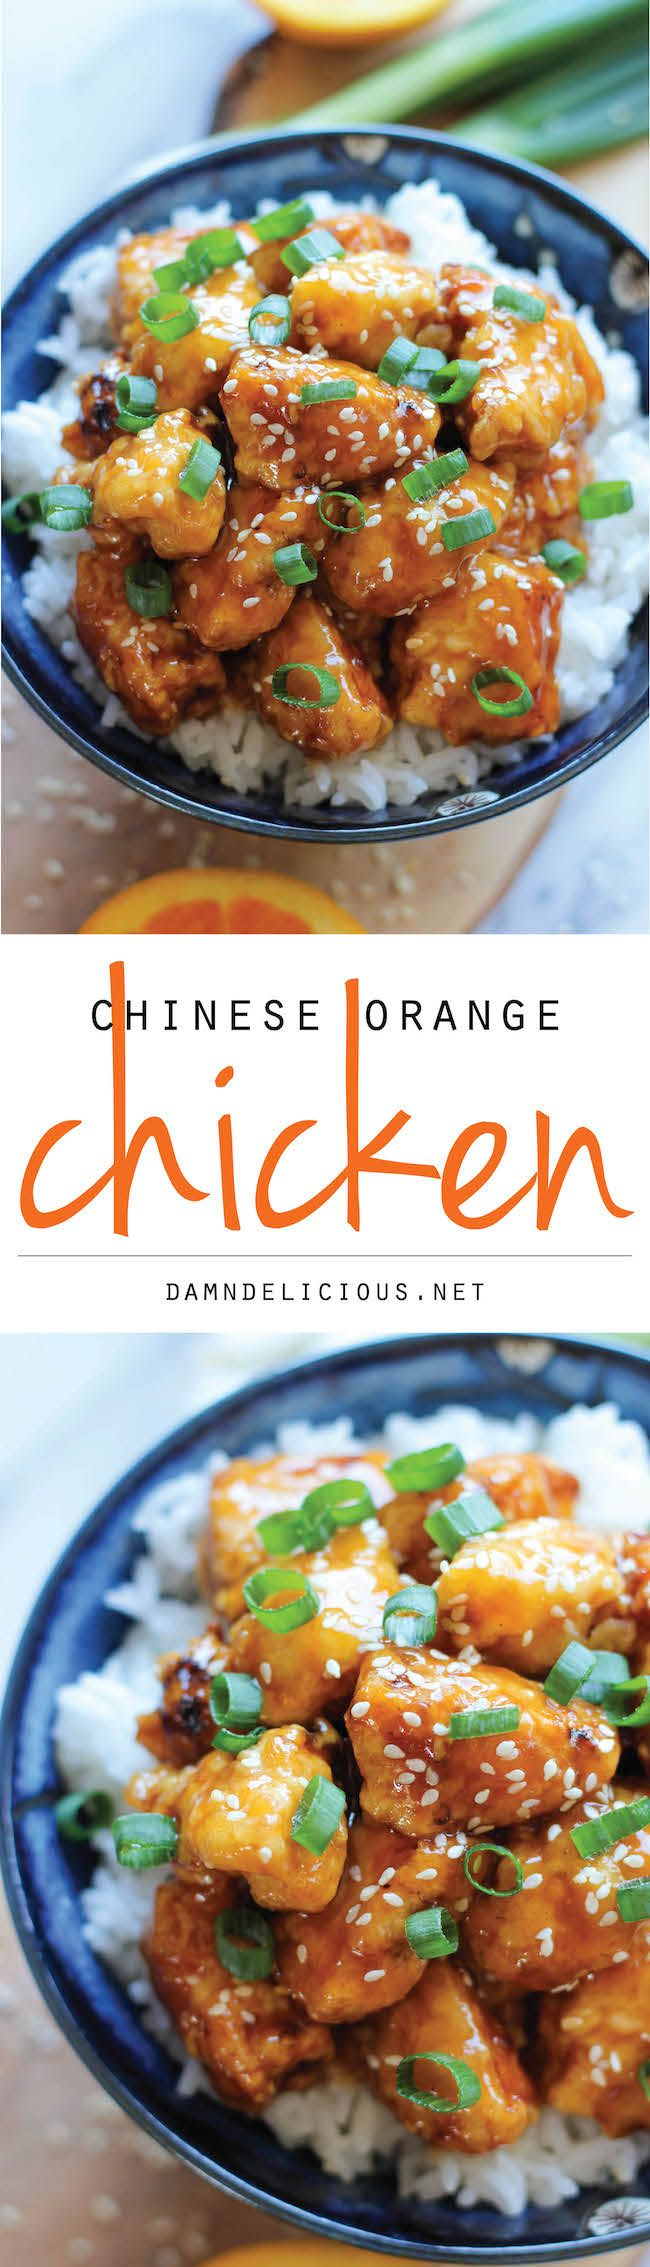 Chinese Orange Chicken   Needs some tweeking for gluten/grain free. Replace soy sauce with tamari or cocunut  aminos. Also replace cornstarch with arrowroot.